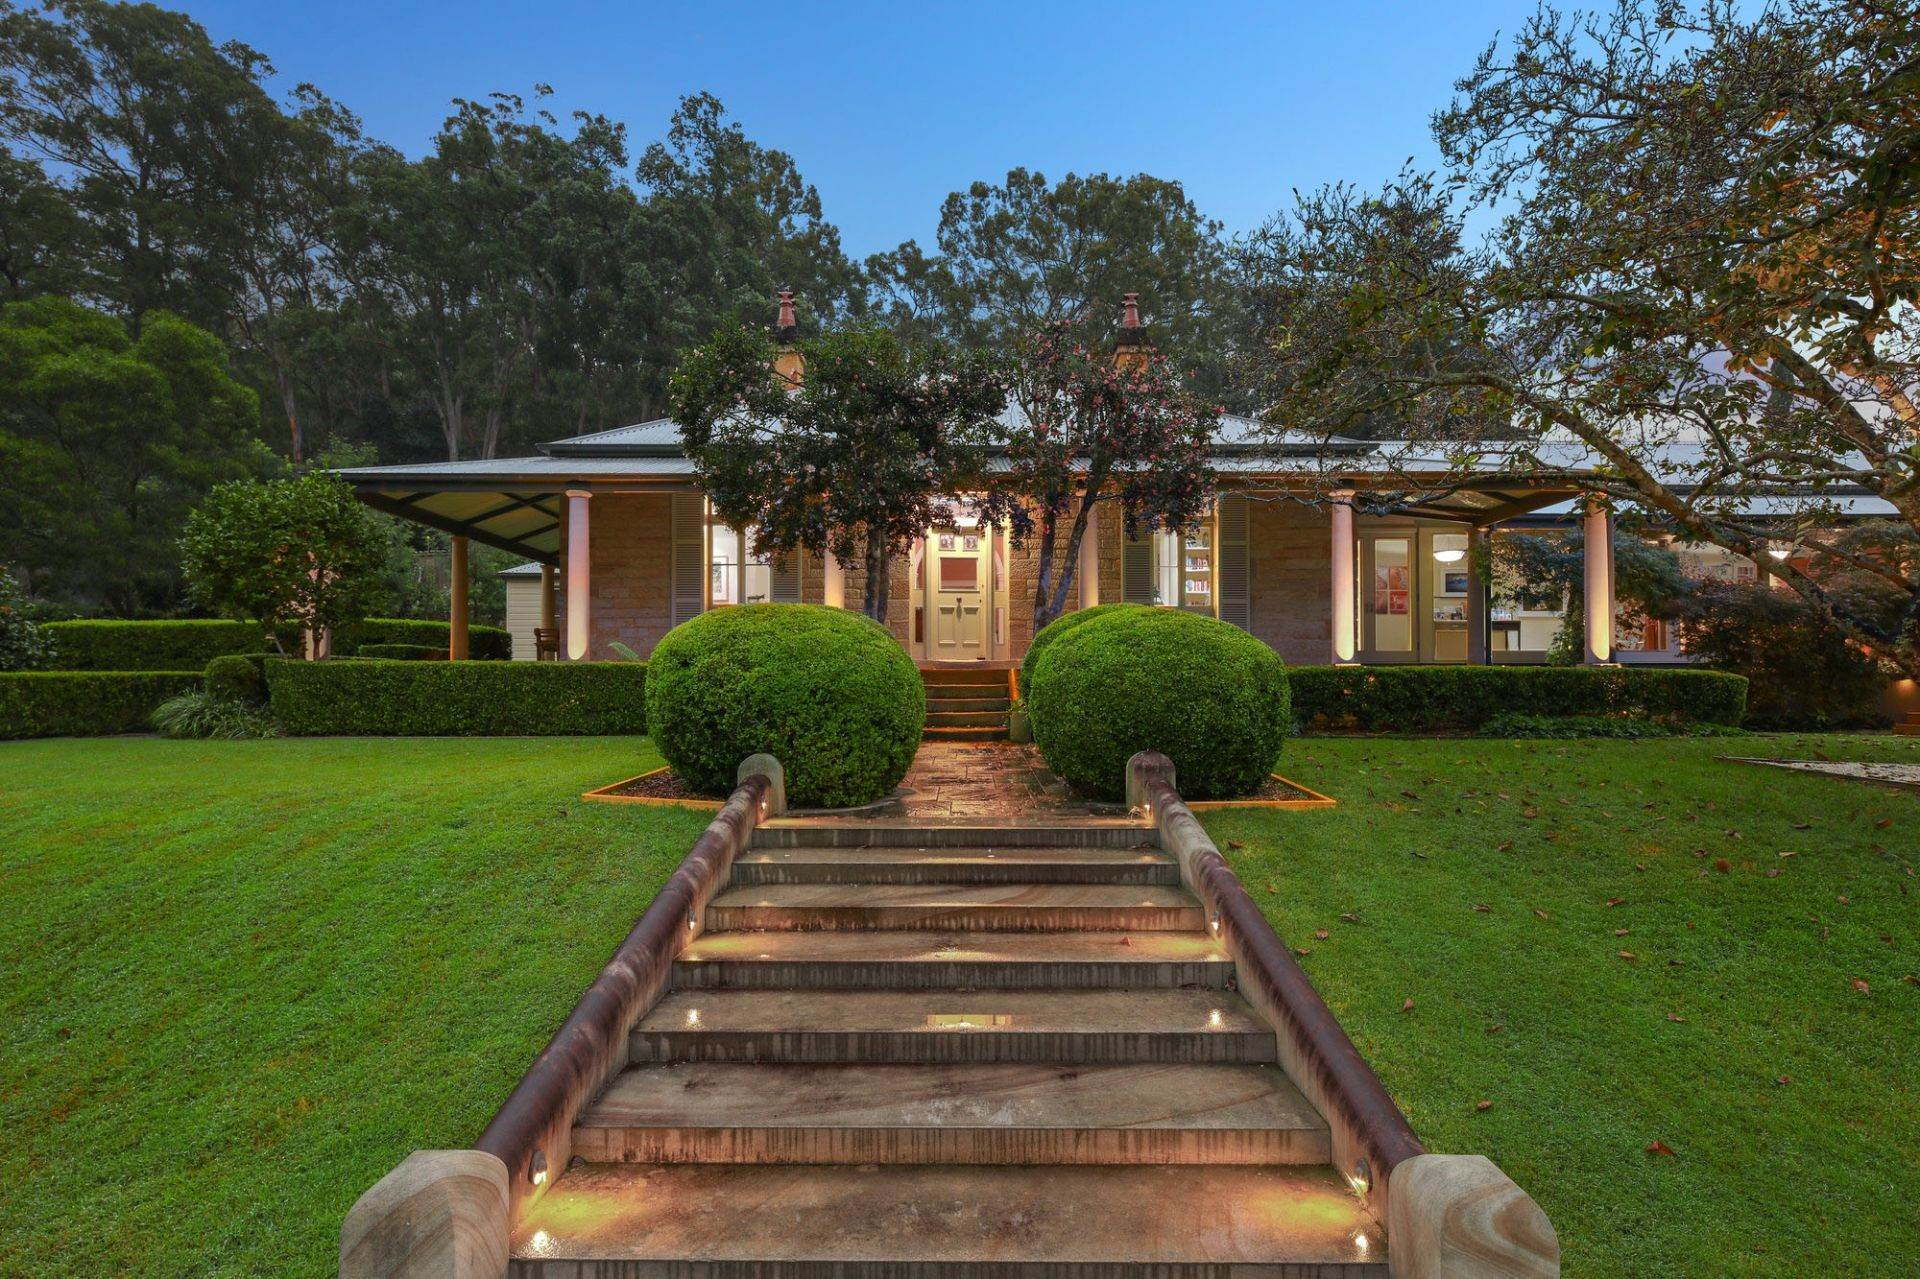 Single Family Home for Sale at VENETIAVILLE A touch of history, glorious park-like lifestyle retreat An oasis of calm, stunning lifestyle estate 1235 West Portland Road New South Wales,2756 Australia